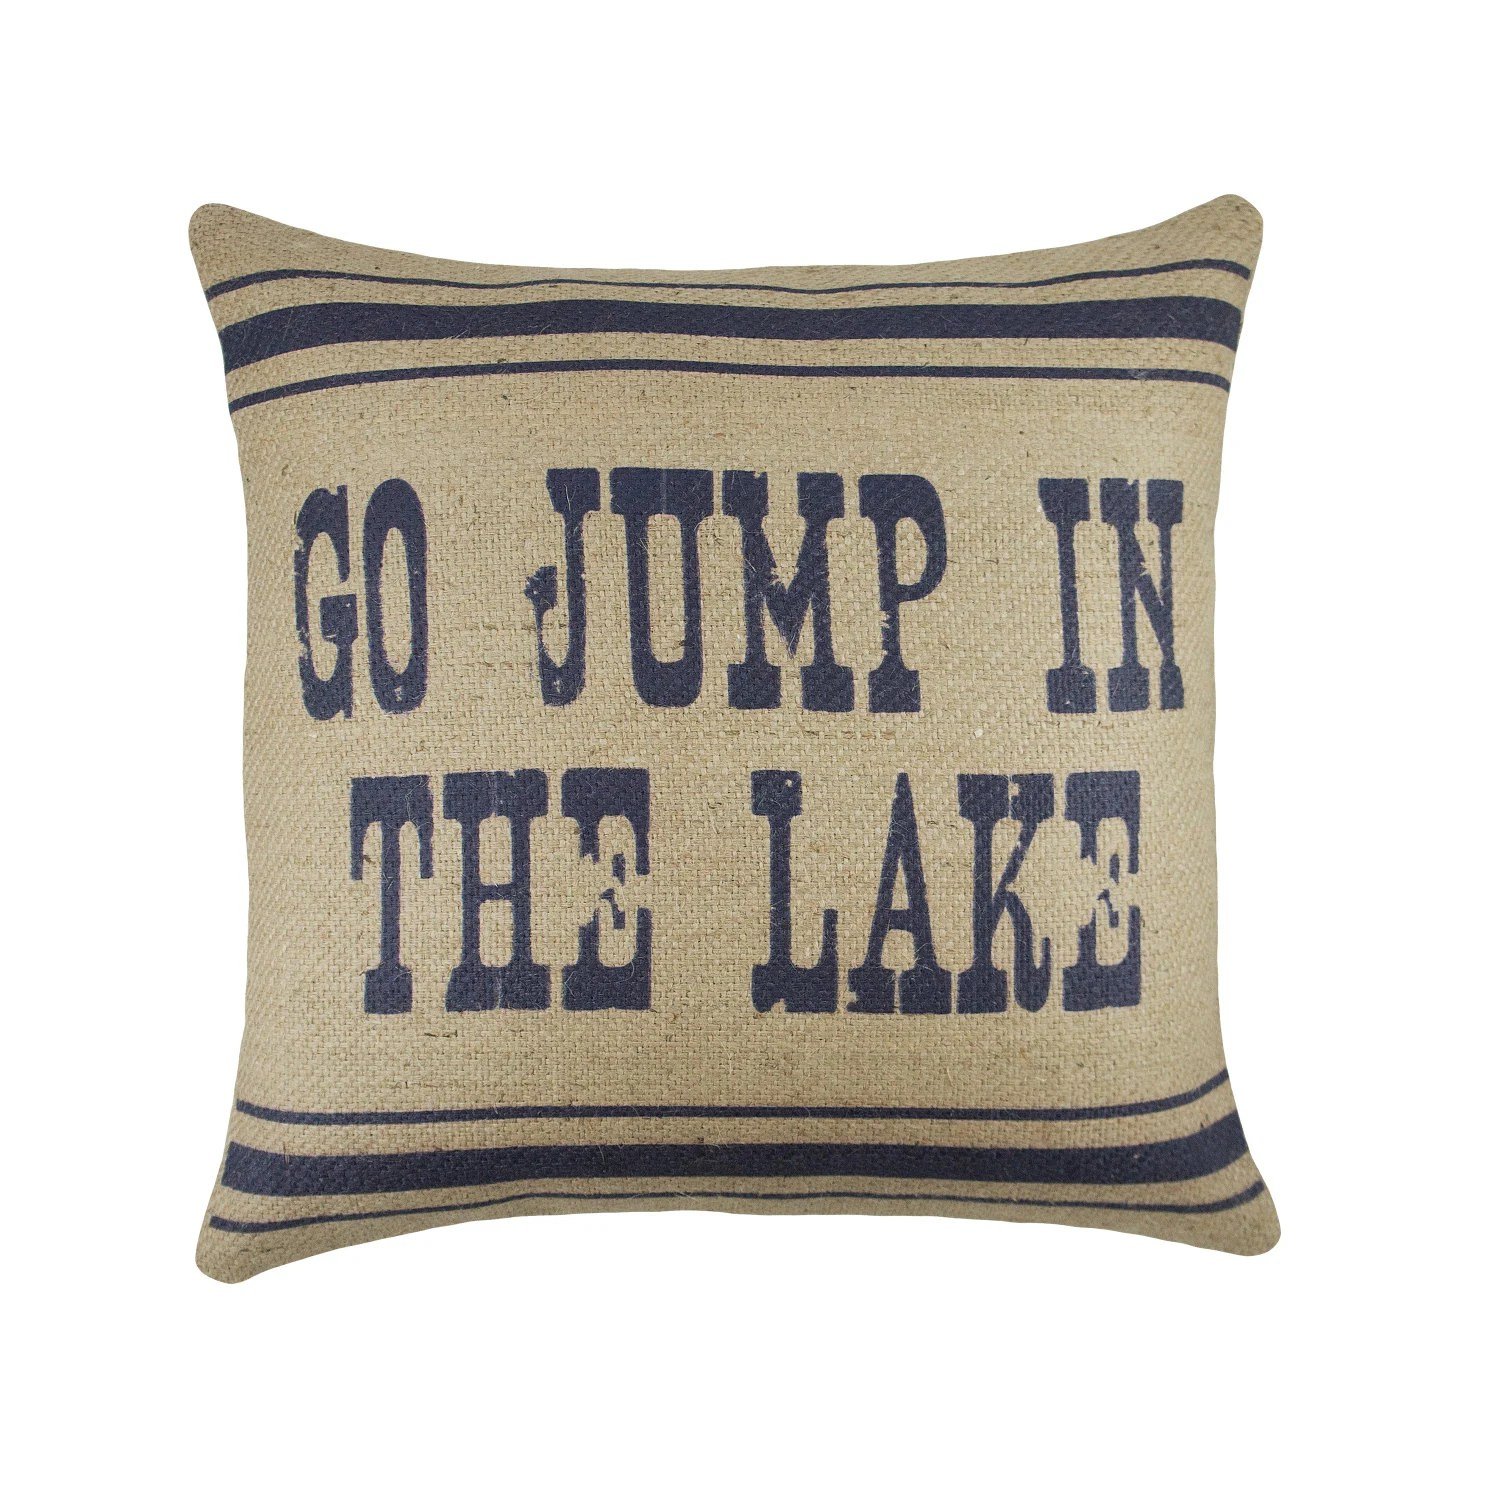 Burlap Chair Cushions Go Jump In The Lake Pillow In Navy Burlap Cushion Adirondack